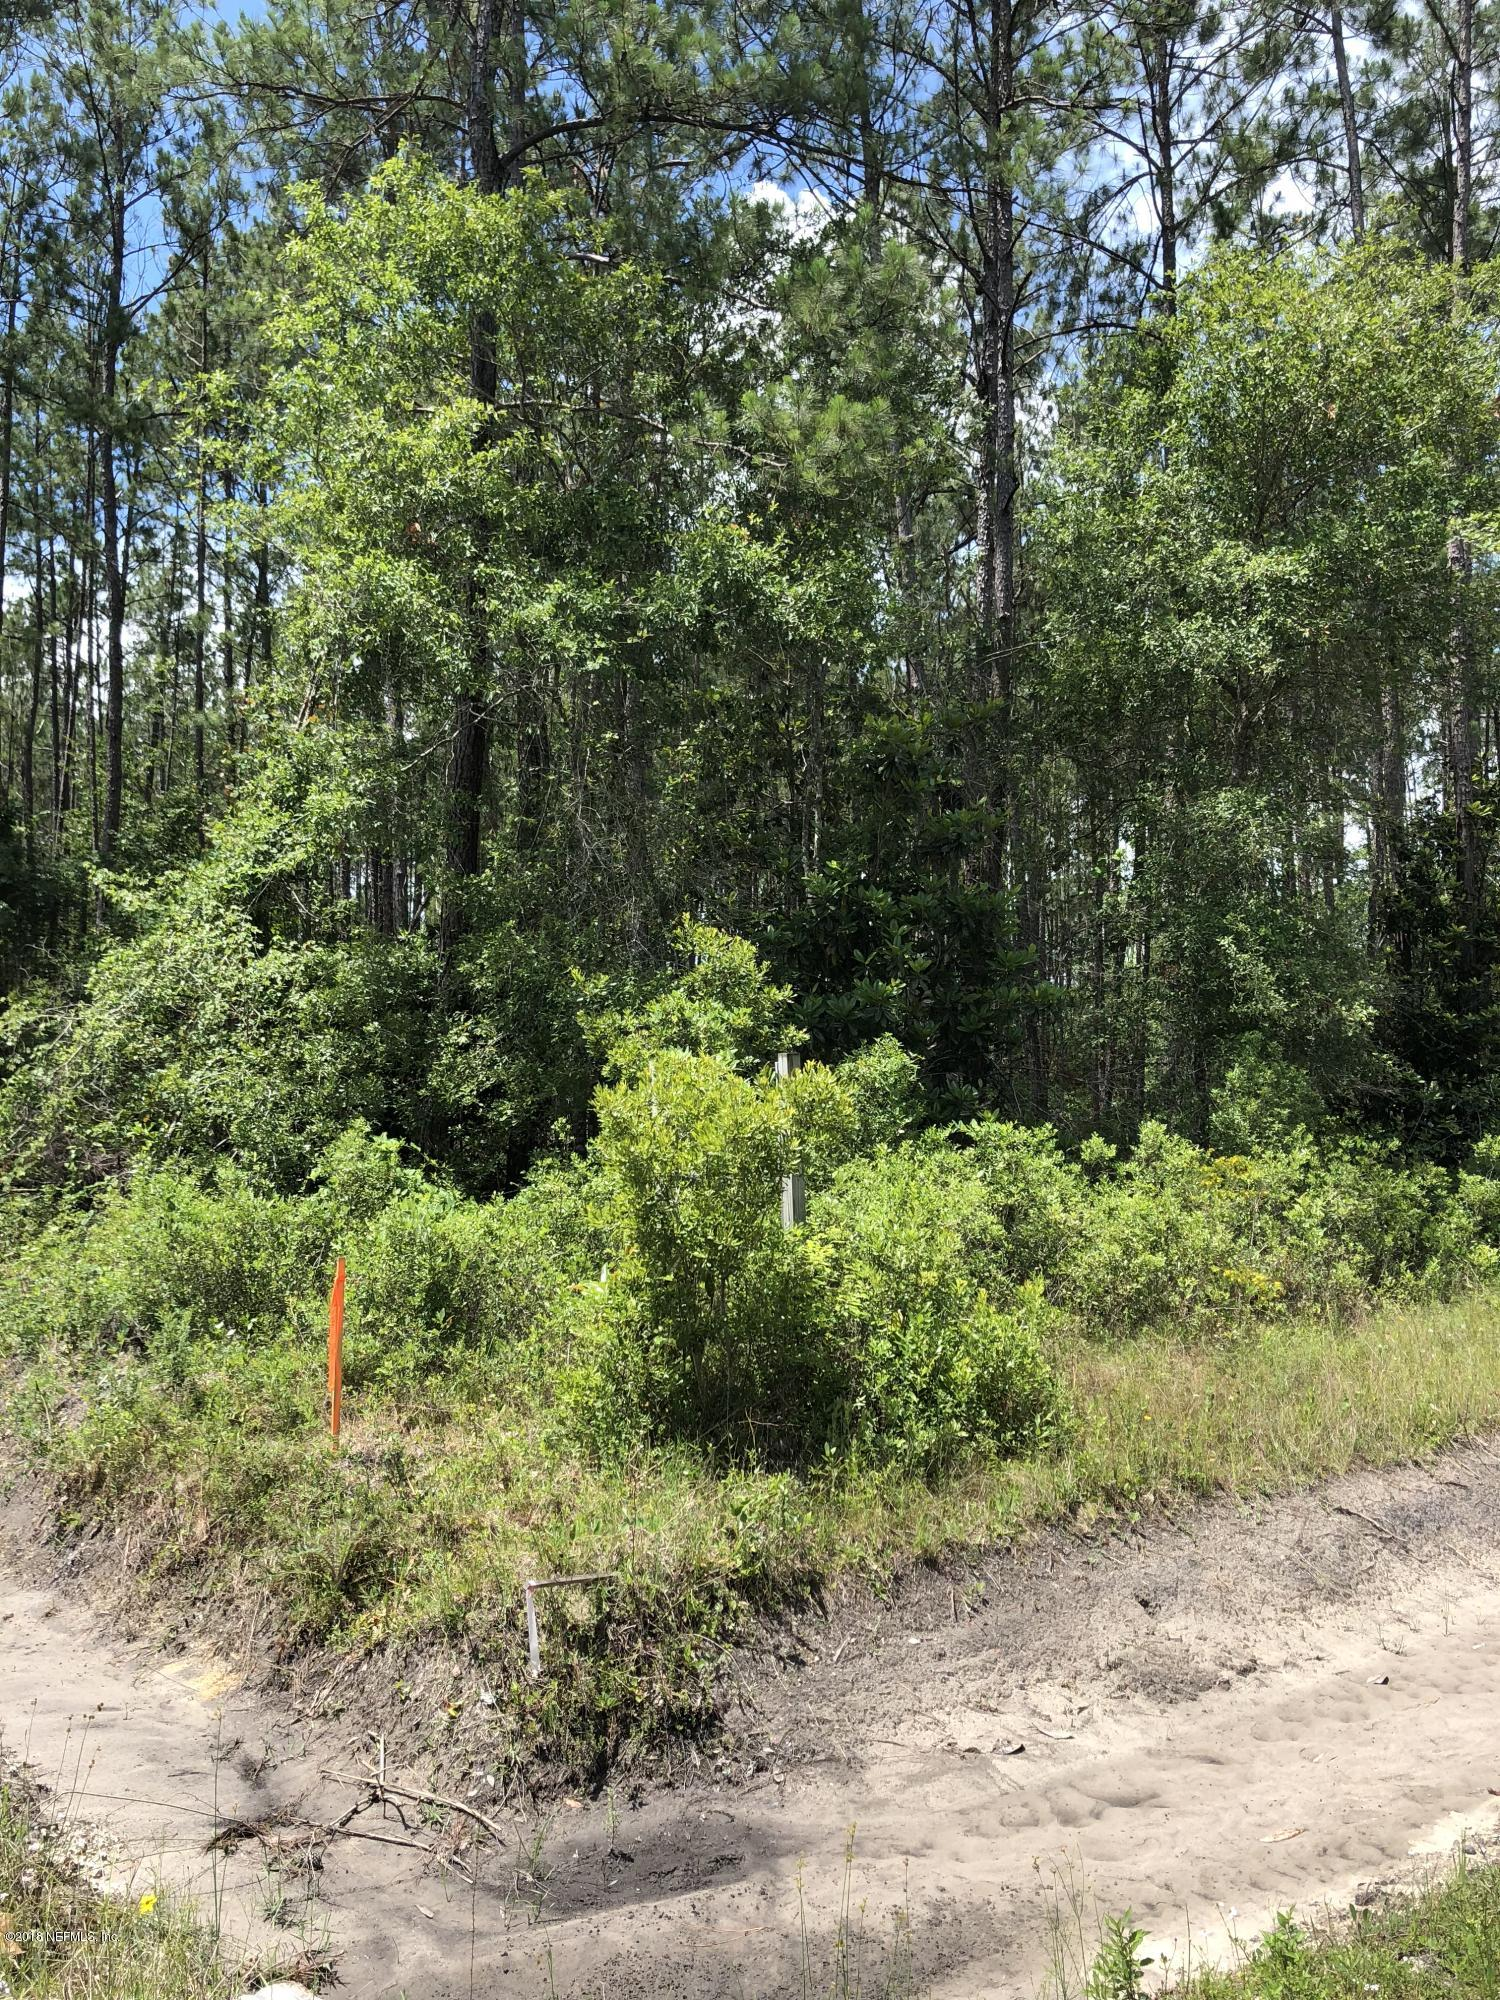 0 WOODLAWN, MACCLENNY, FLORIDA 32063, ,Vacant land,For sale,WOODLAWN,934504